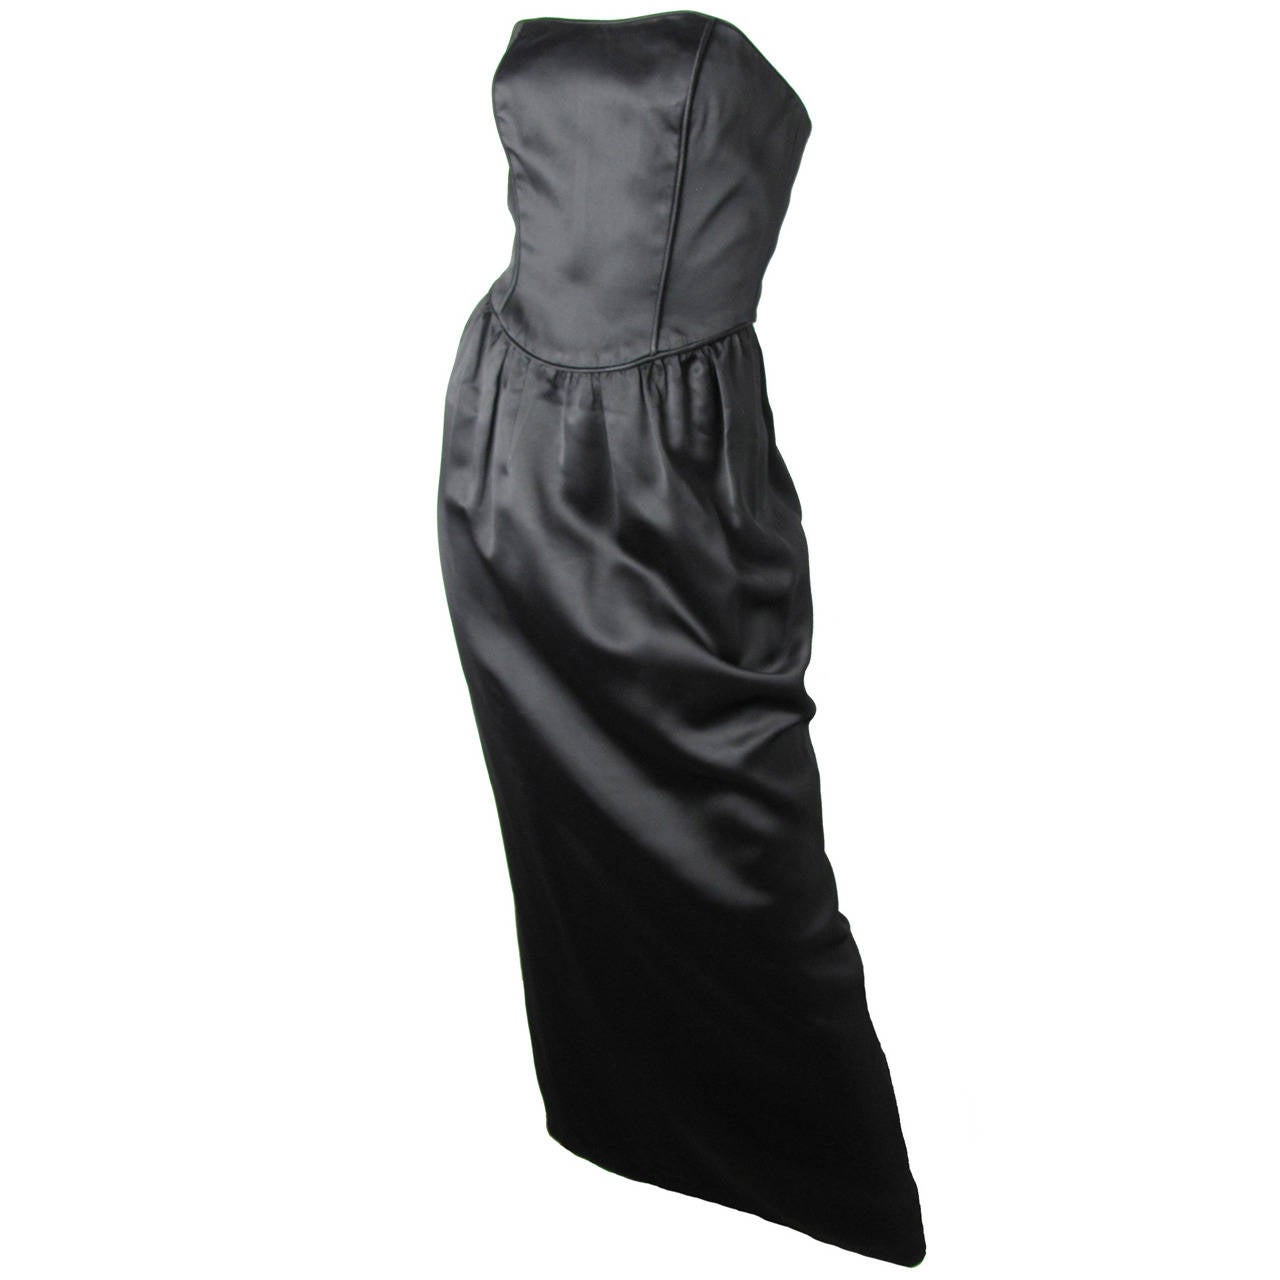 Roland Klein black strapless dress with black and white striped train